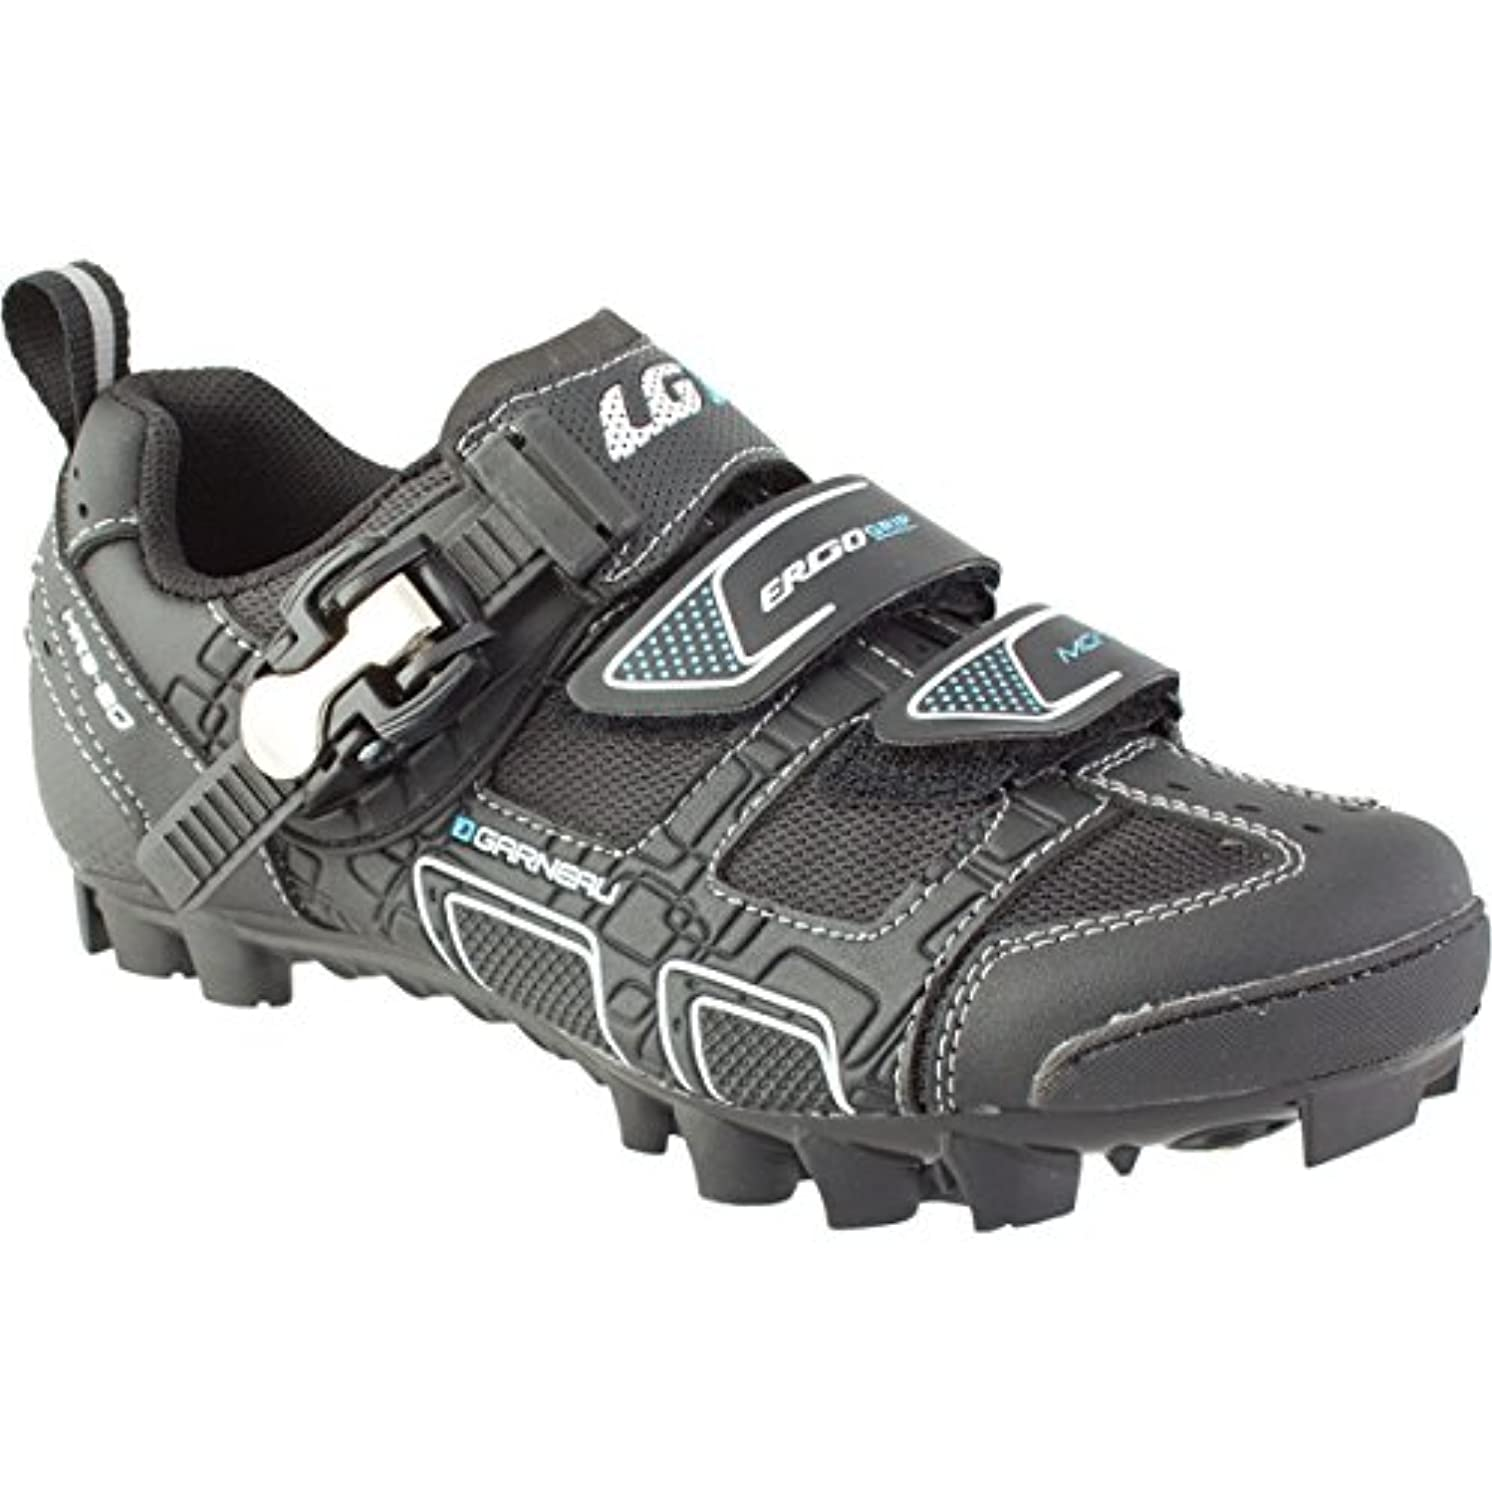 むしろ貢献する首尾一貫したLouis Garneau Monte Mountain Bike Shoes – Women 's